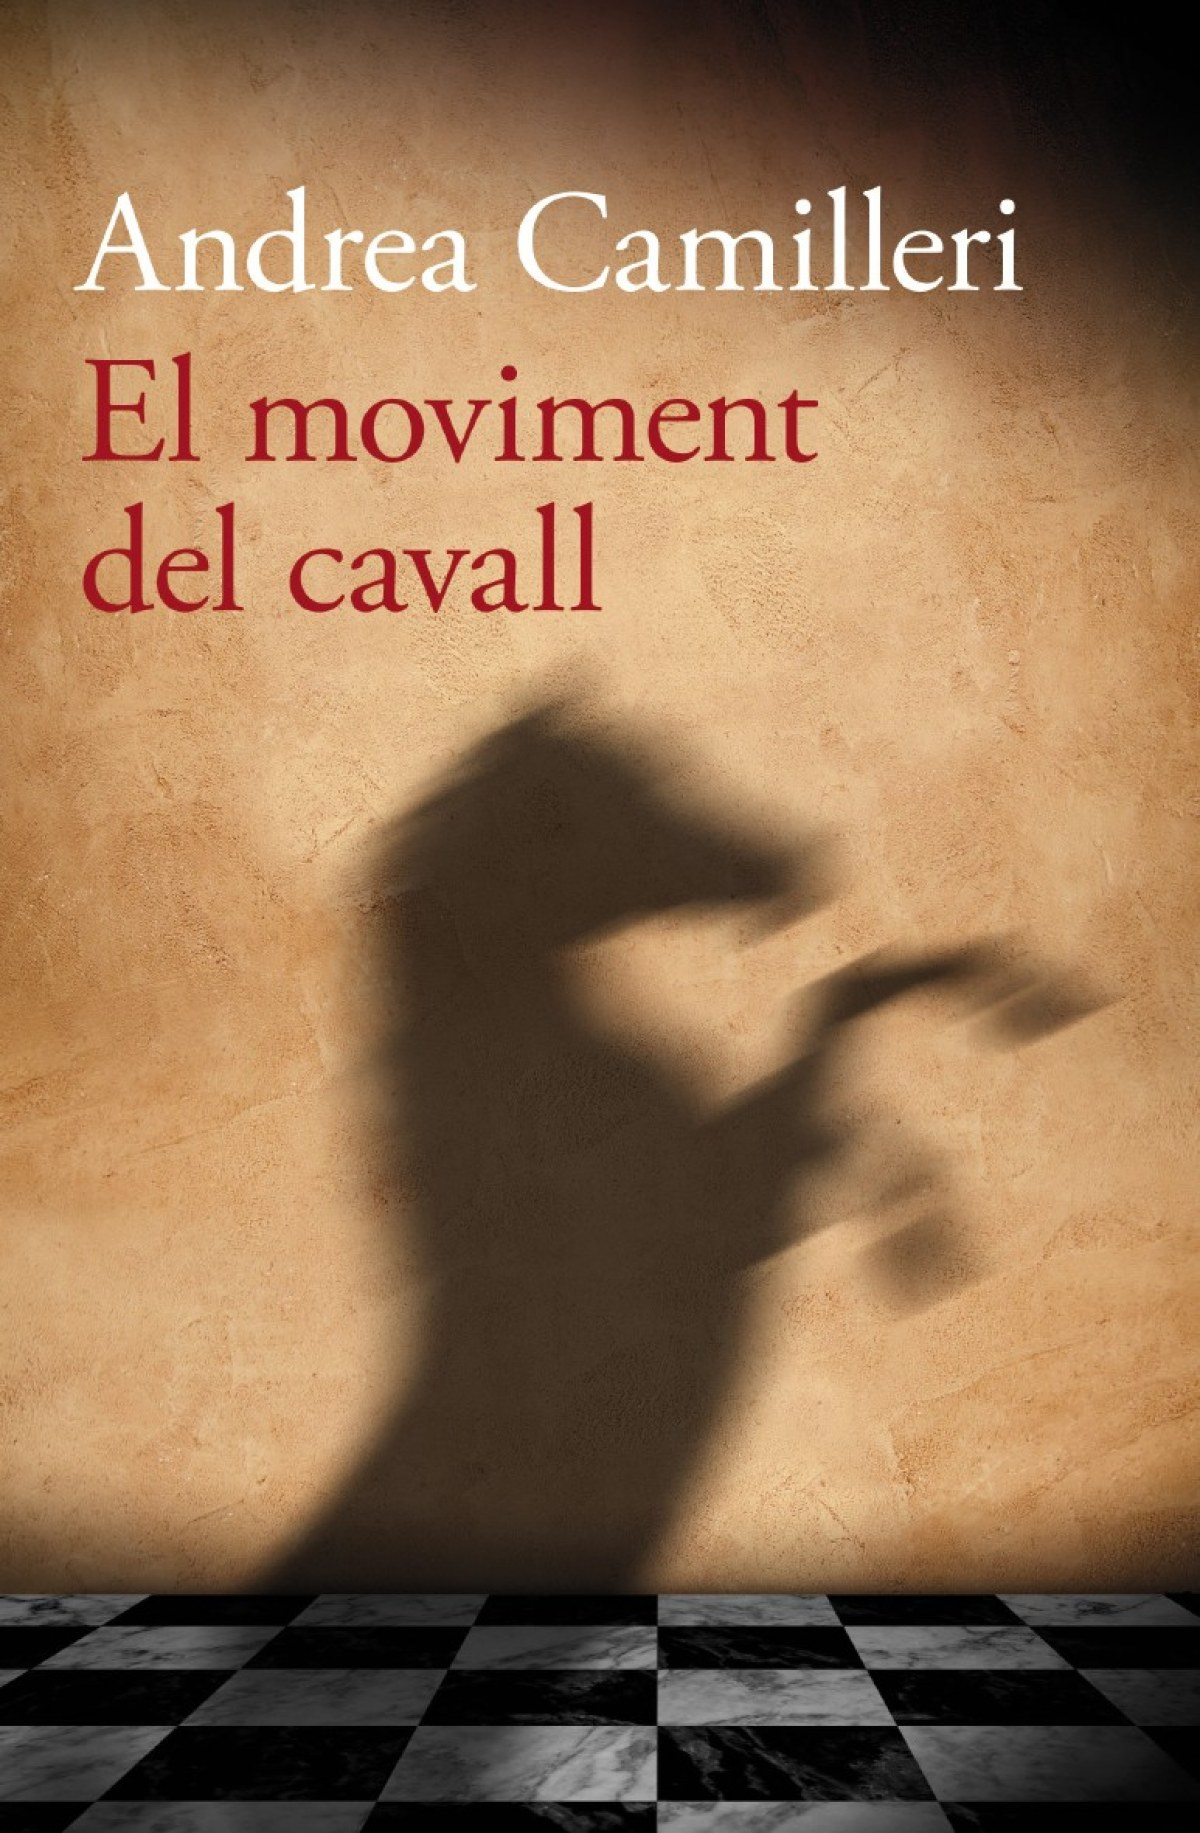 El moviment del cavall 9788490261743